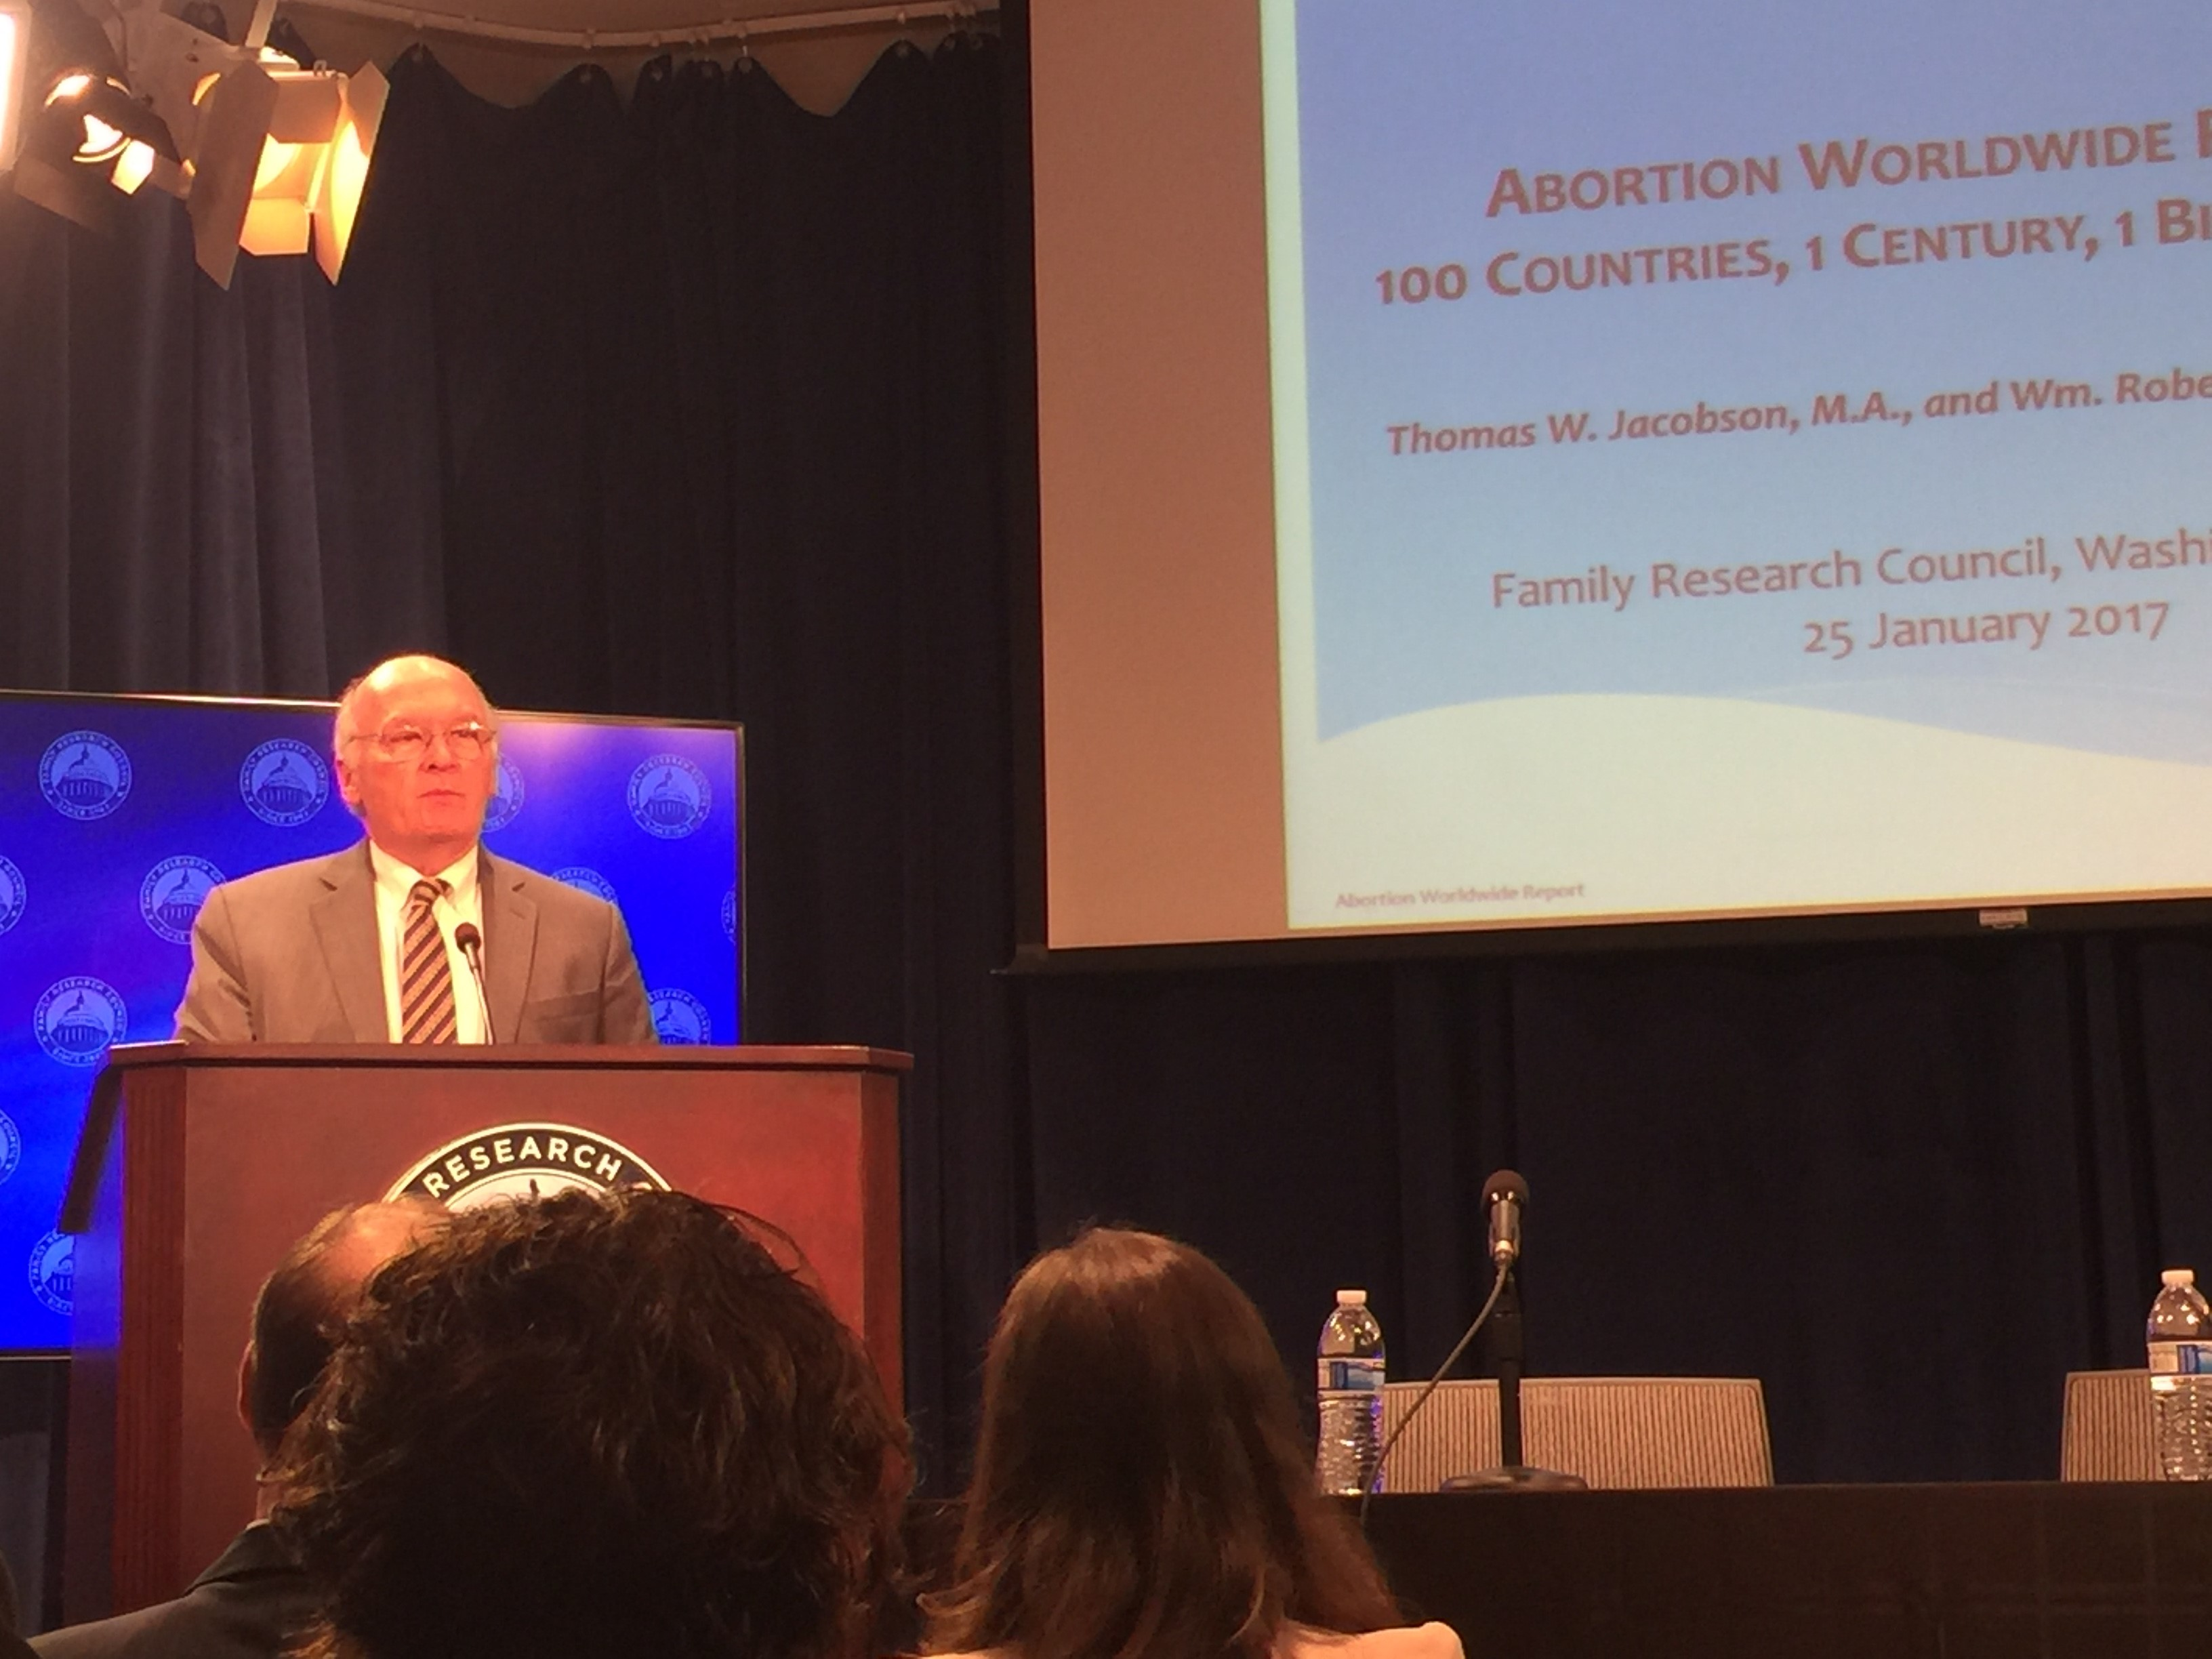 CLI President Chuck Donovan presents at Family Research Council on January 25, 2017.